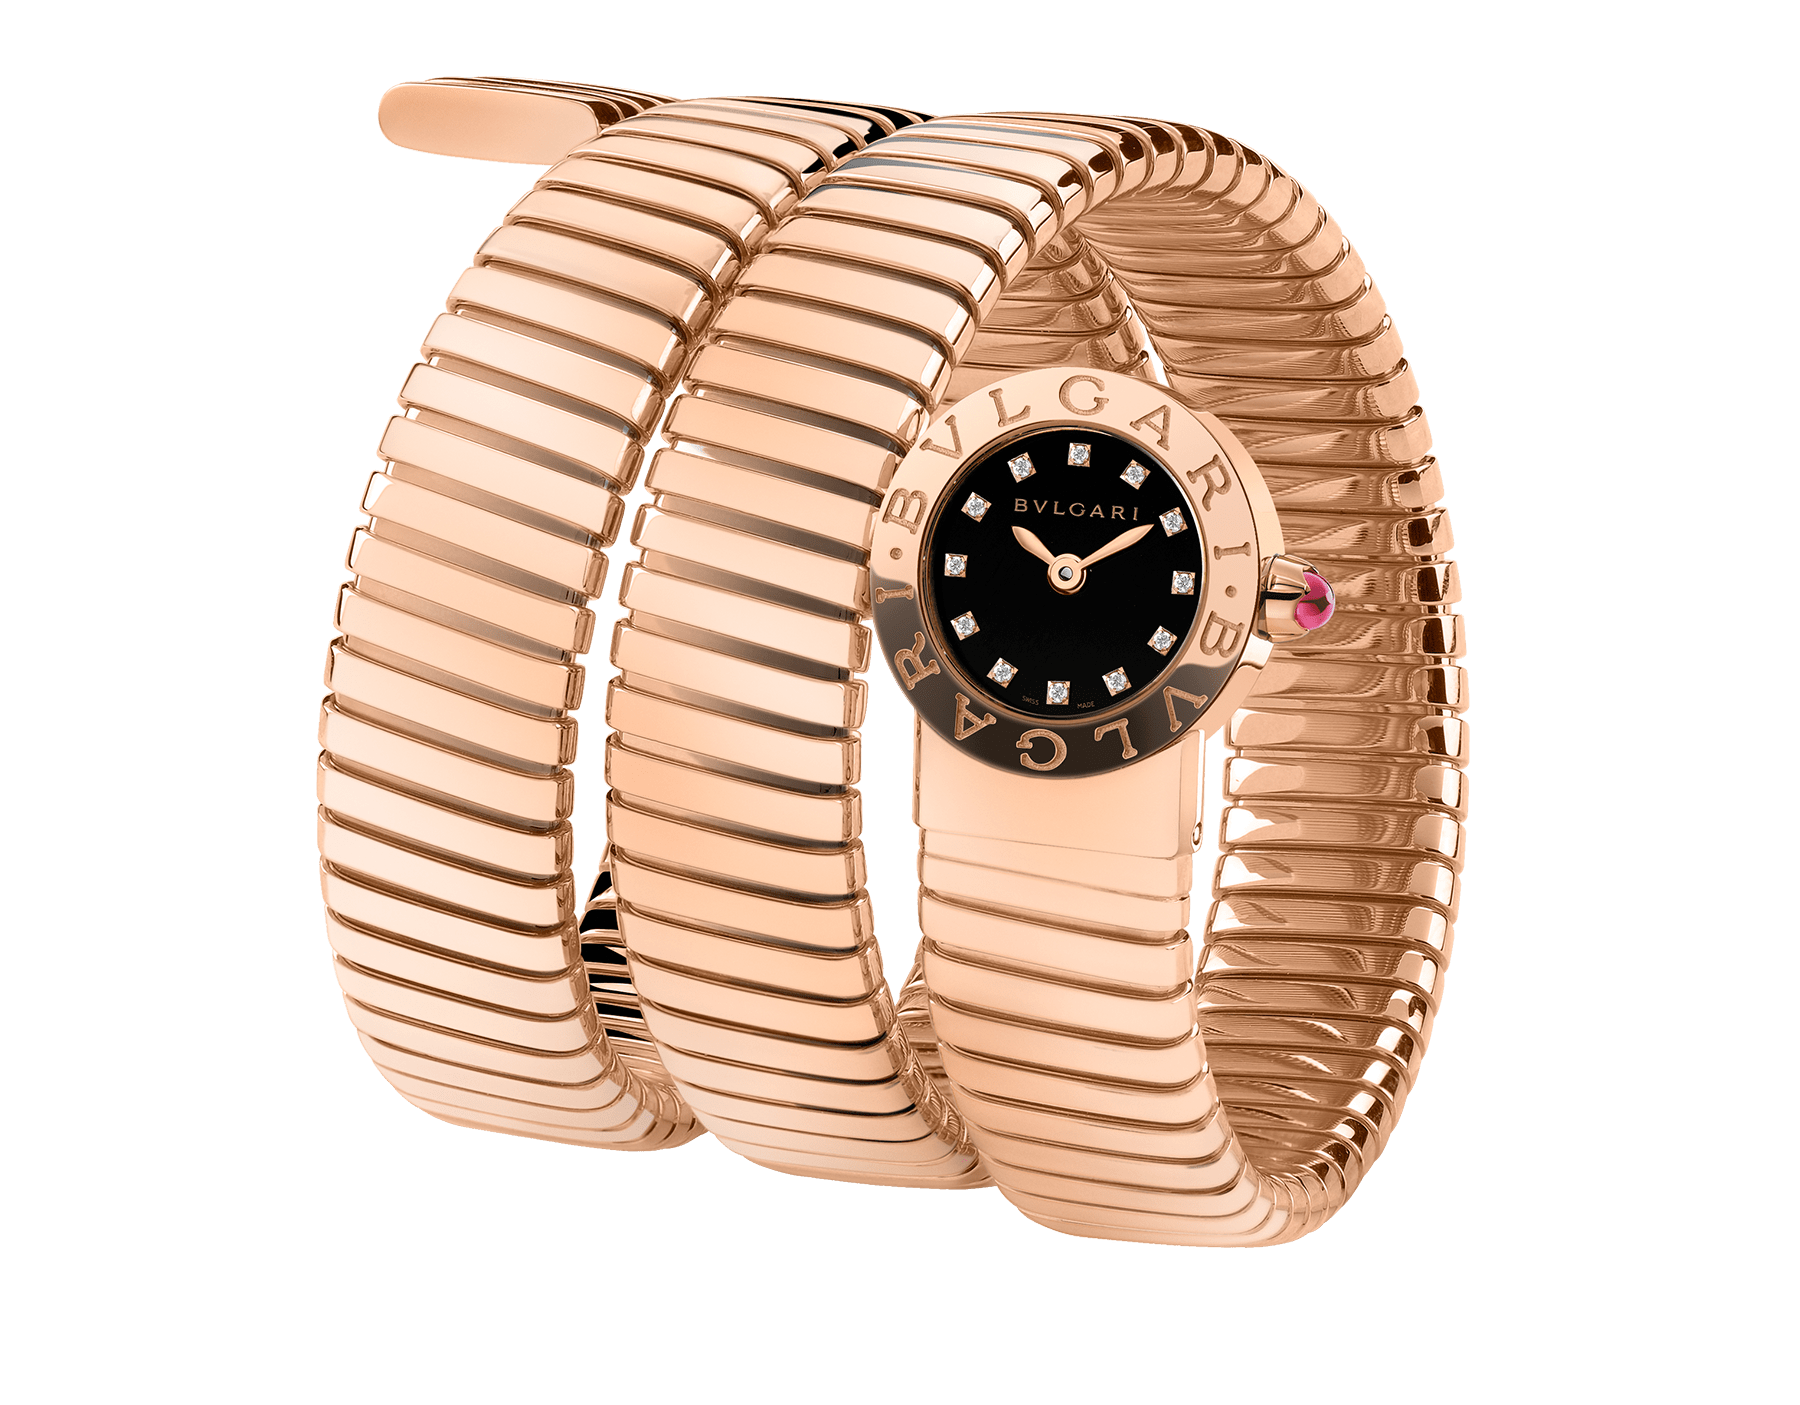 BVLGARI BVLGARI Tubogas watch in 18 kt rose gold case and double spiral bracelet, with black lacquered dial and diamond indexes 102150 image 1